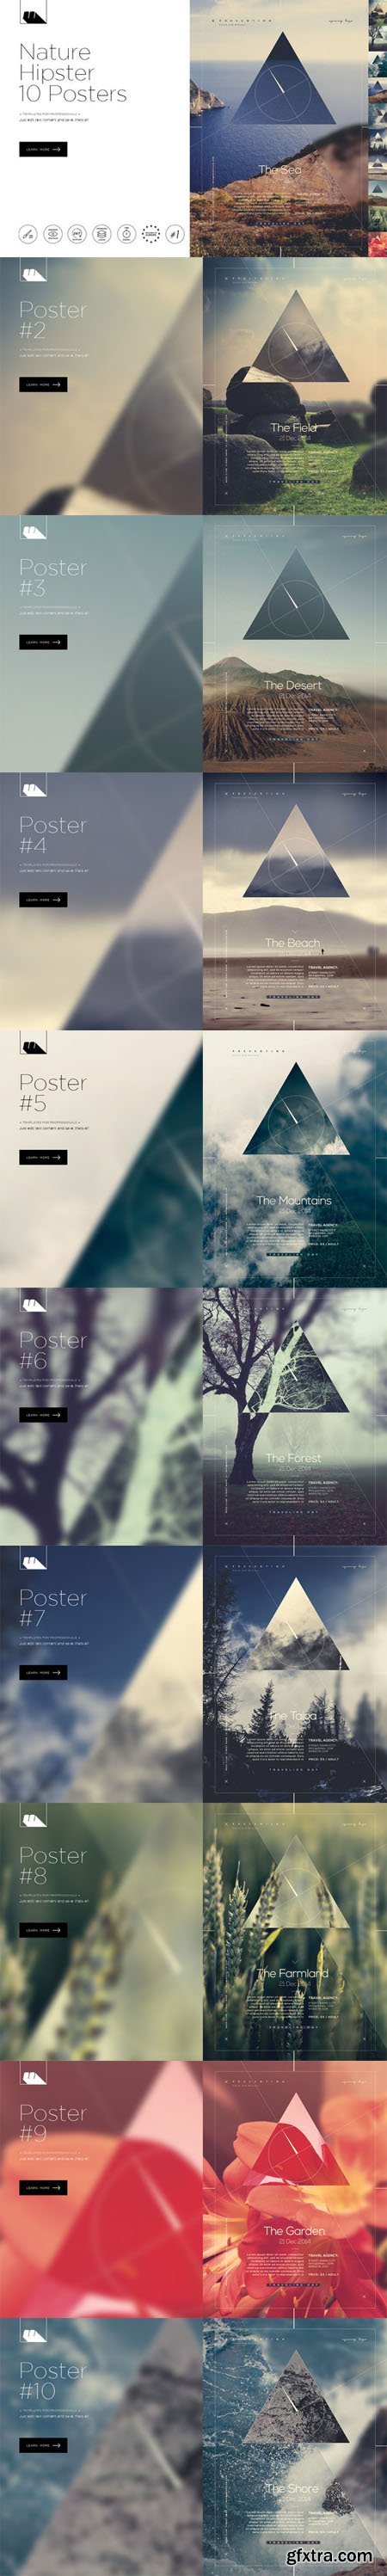 CM - Hipster Nature 10 Posters 494161